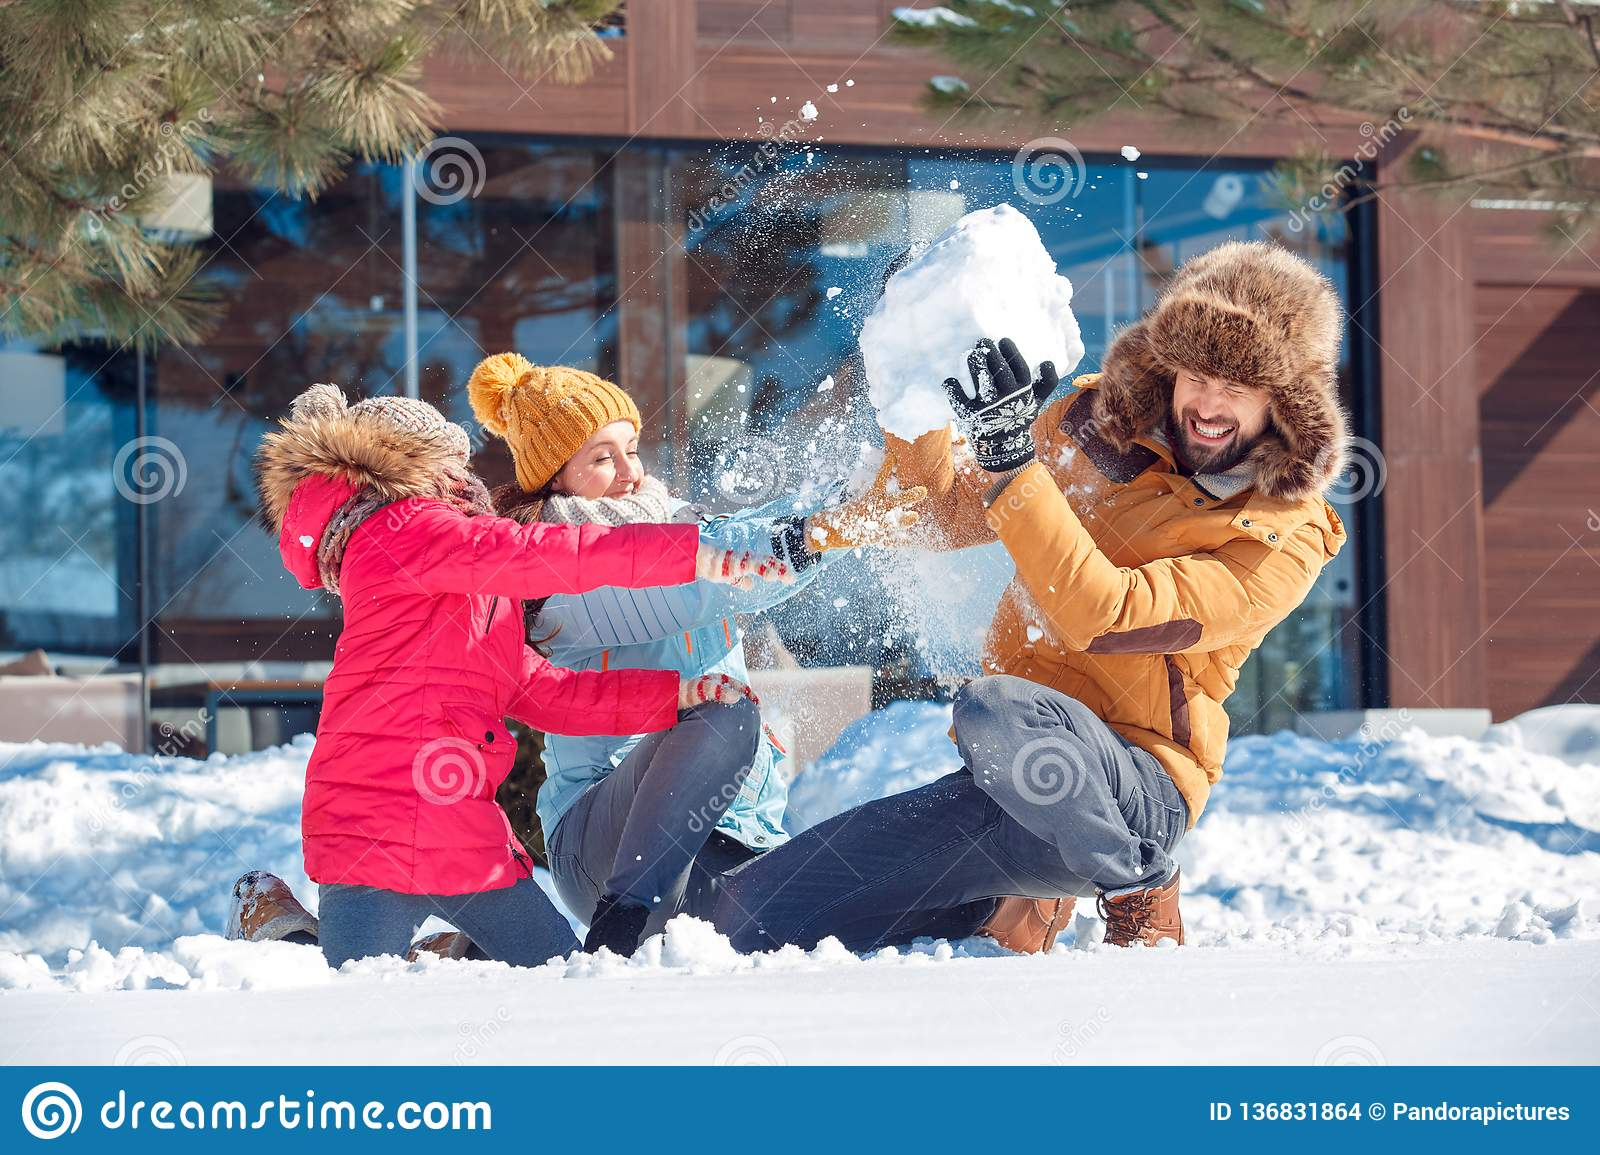 Winter vacation. Family time together outdoors sitting throwing snow fighting laughing surprised close-up